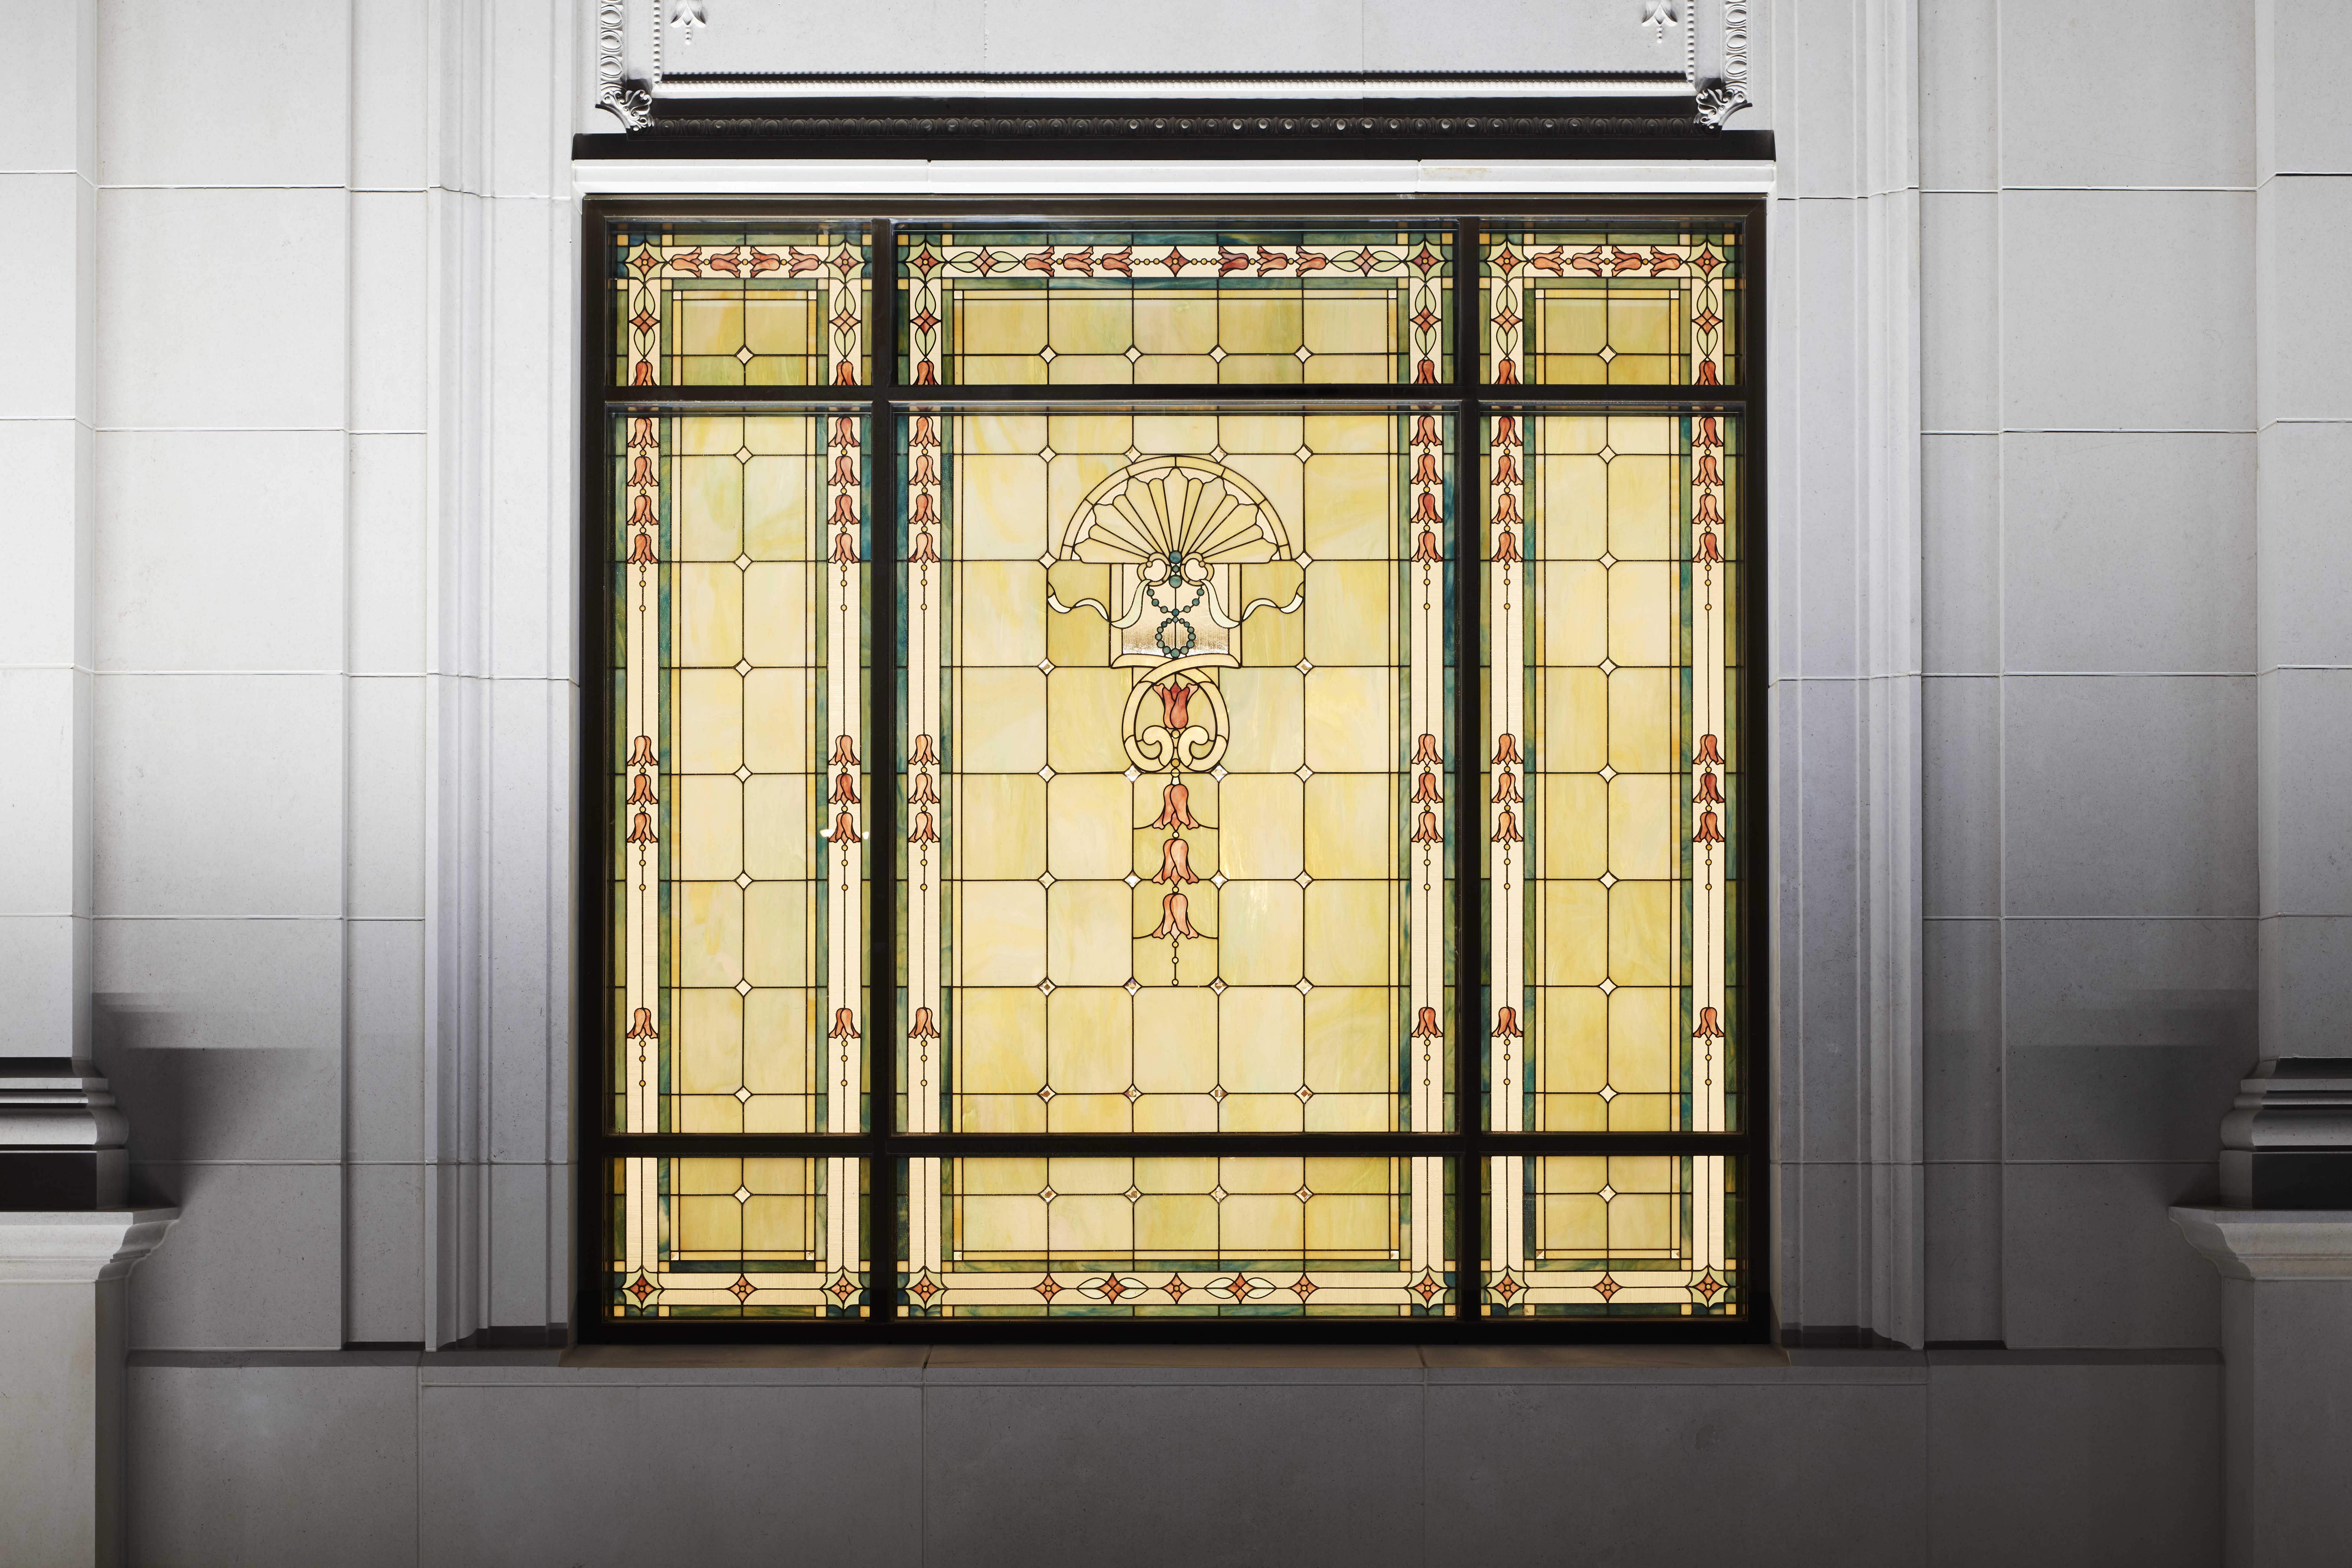 Stained-glass window inside the Memphis Tennessee Temple.